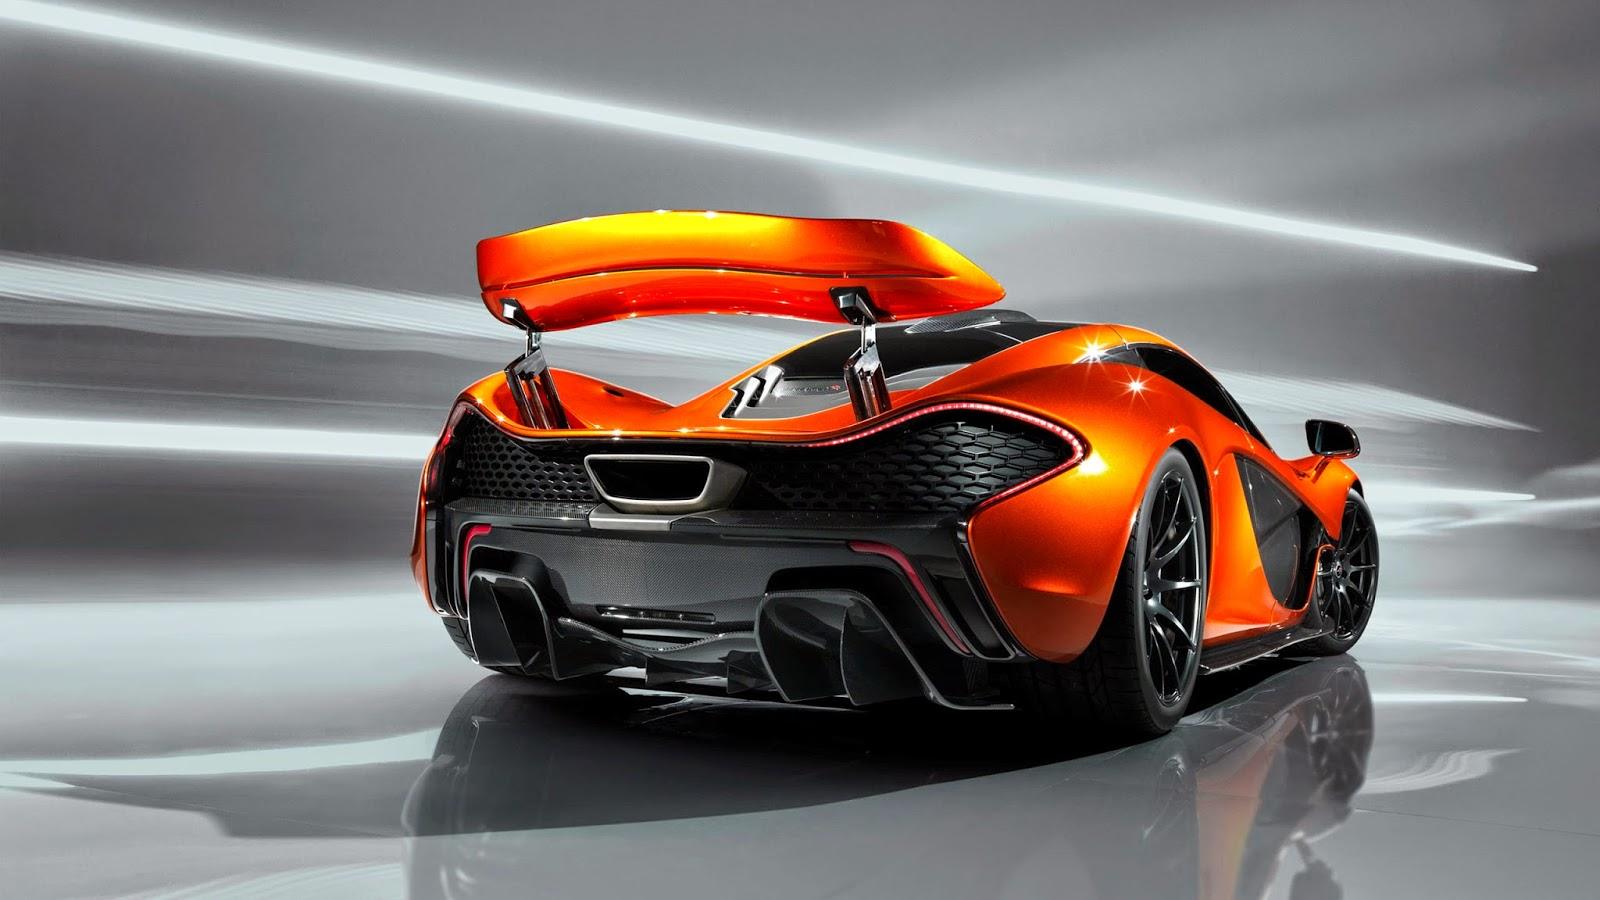 allinallwalls : car wallpapers 2014, iphone car, fast cool cars